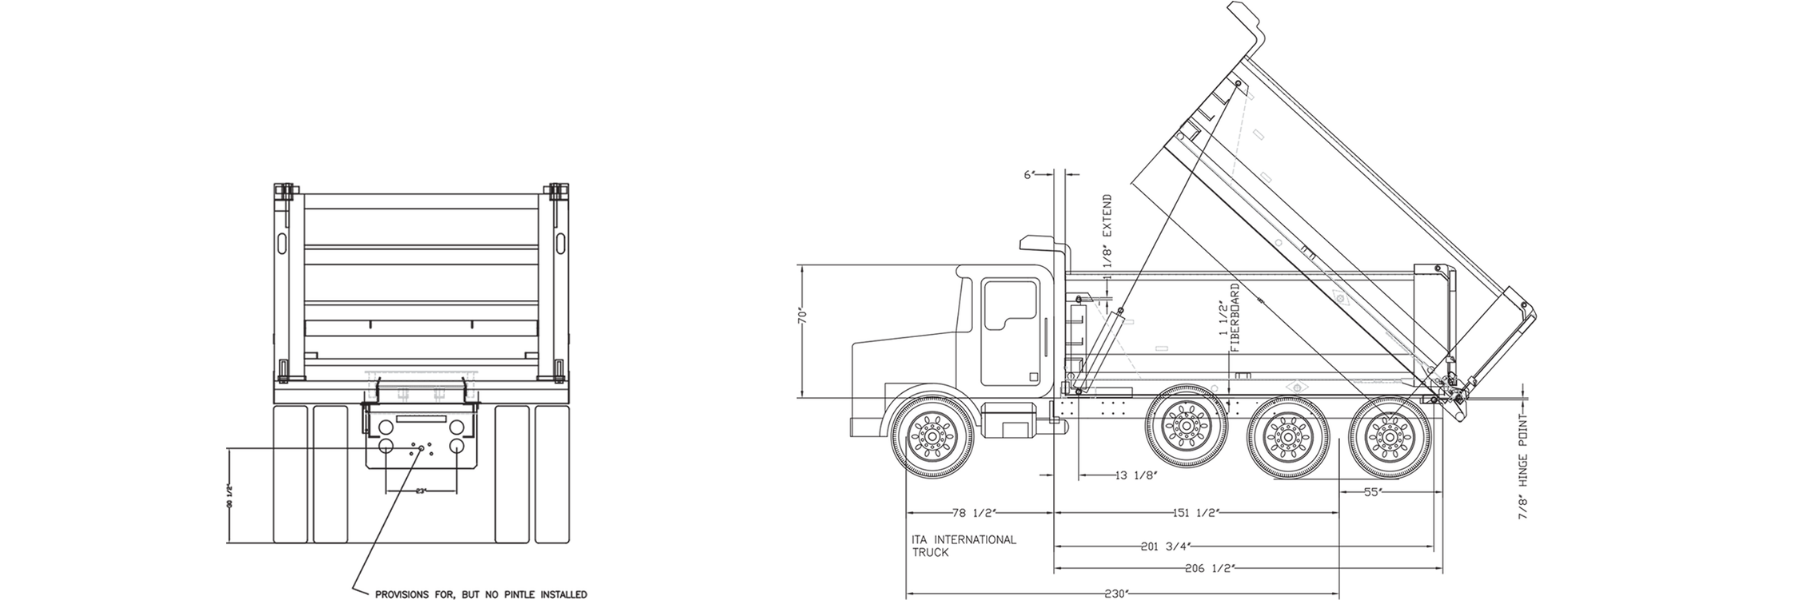 Ranco Dump Body Trailer Drawings